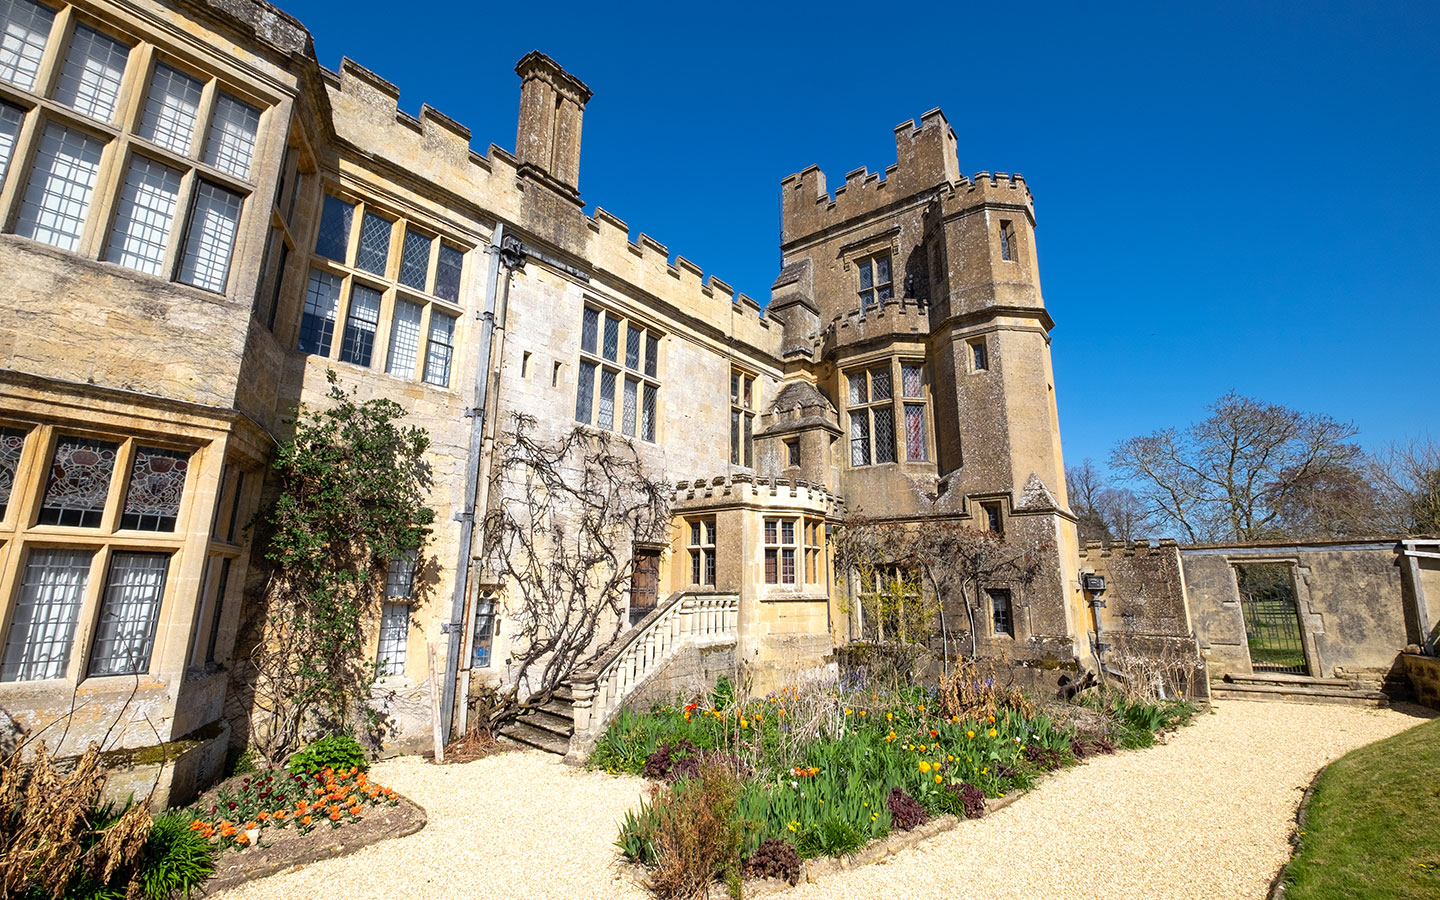 Sudeley Castle in Winchcombe in the Cotswolds